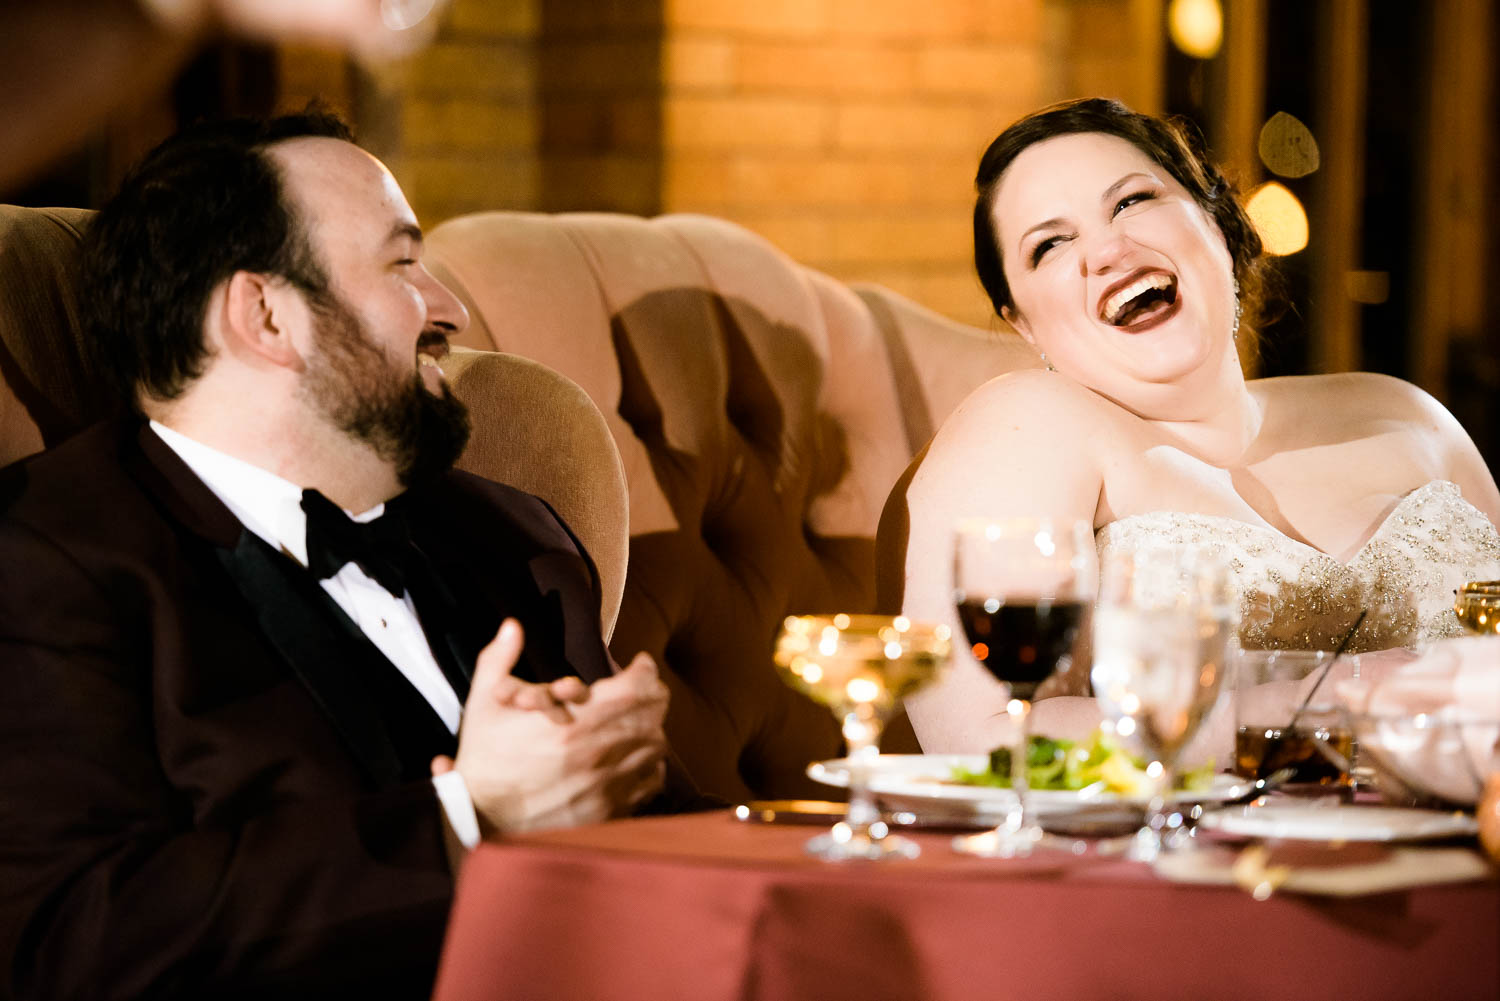 Fun moment of bride and groom during their wedding reception at Cafe Brauer Chicago.